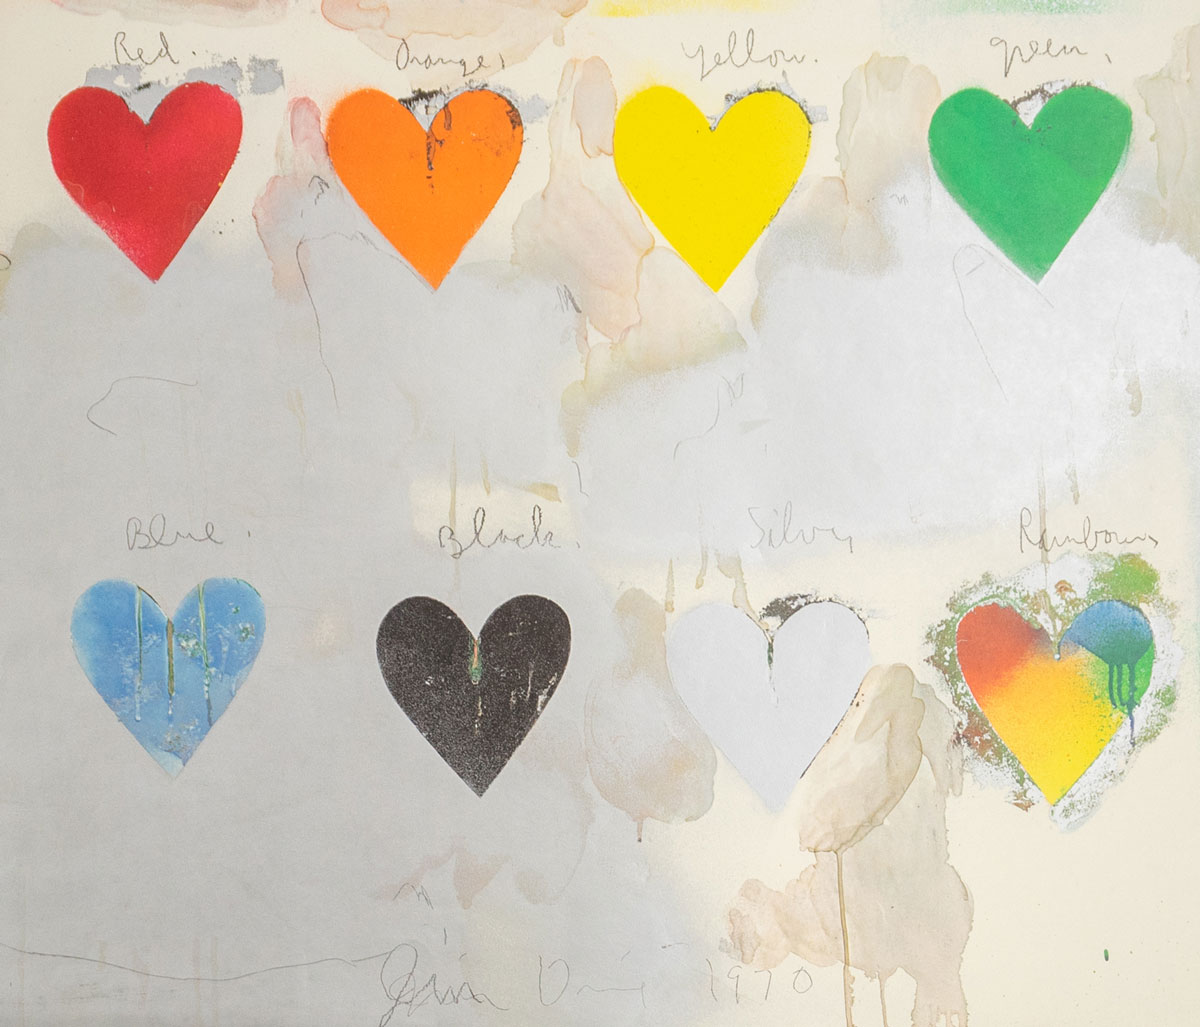 Jim Dine Signed Eight Hearts Print